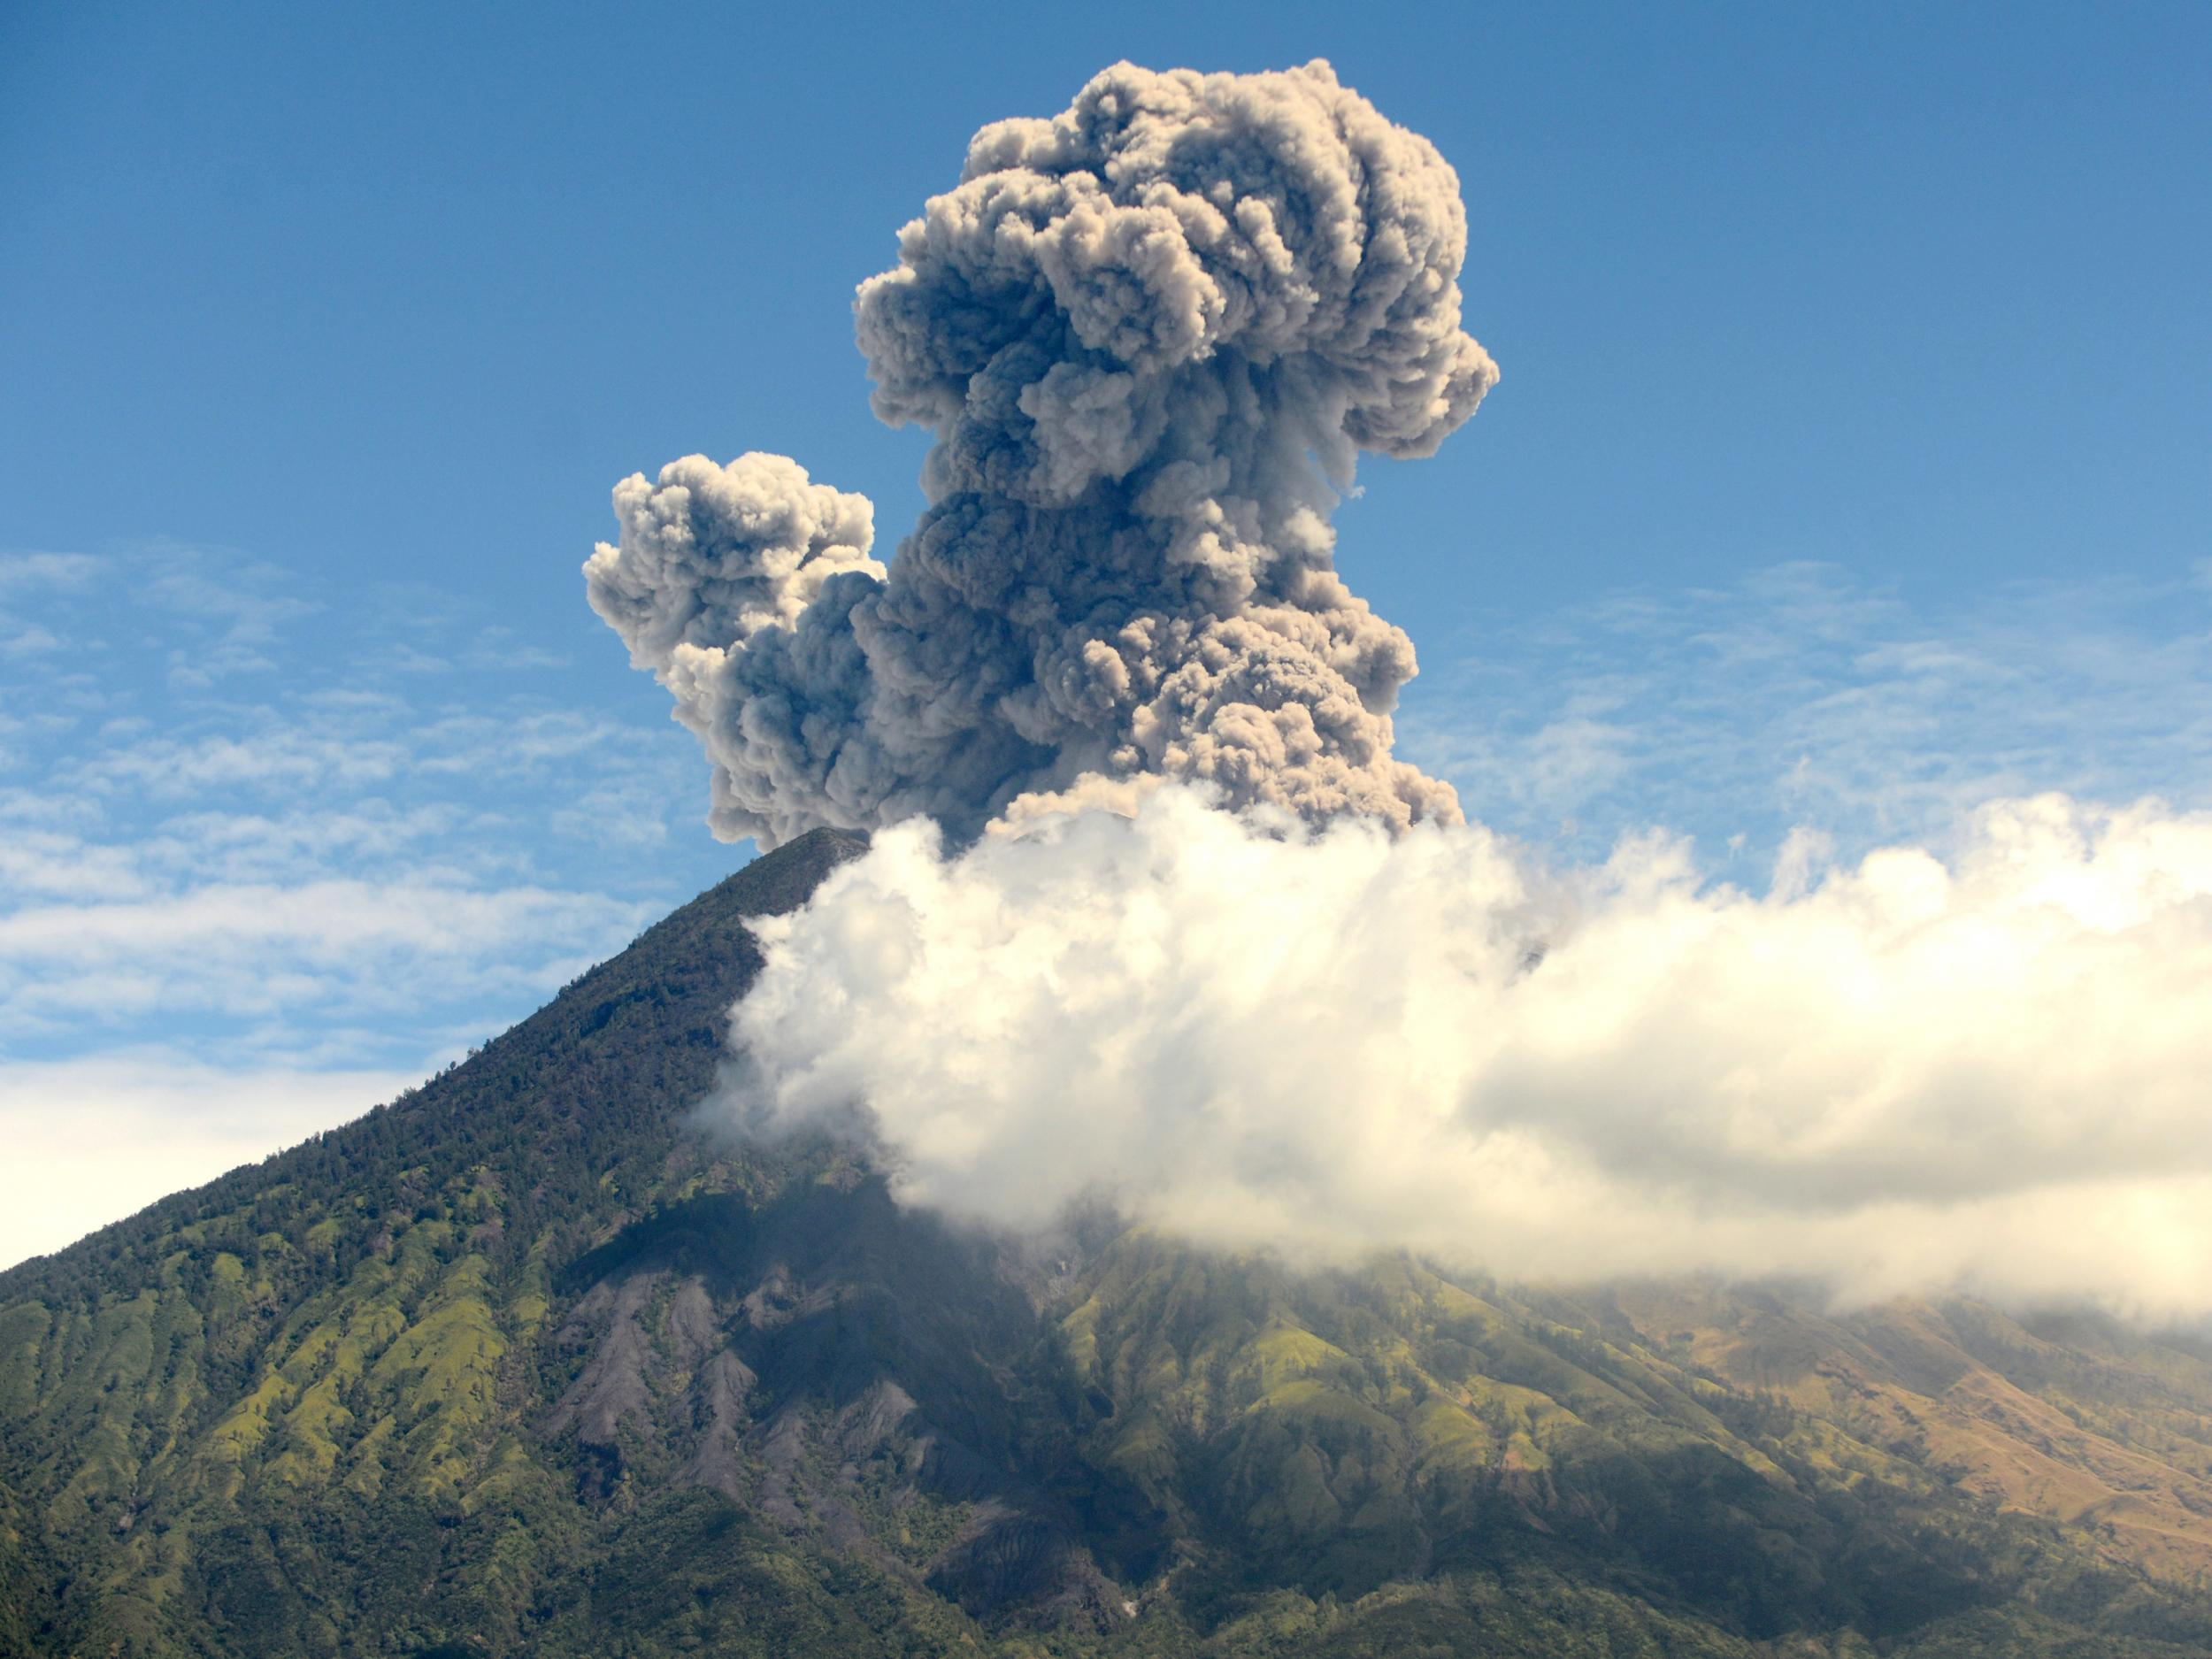 Scientists will soon try to dim the sun in first ever attempt to mimic volcanic eruption and reverse global warming